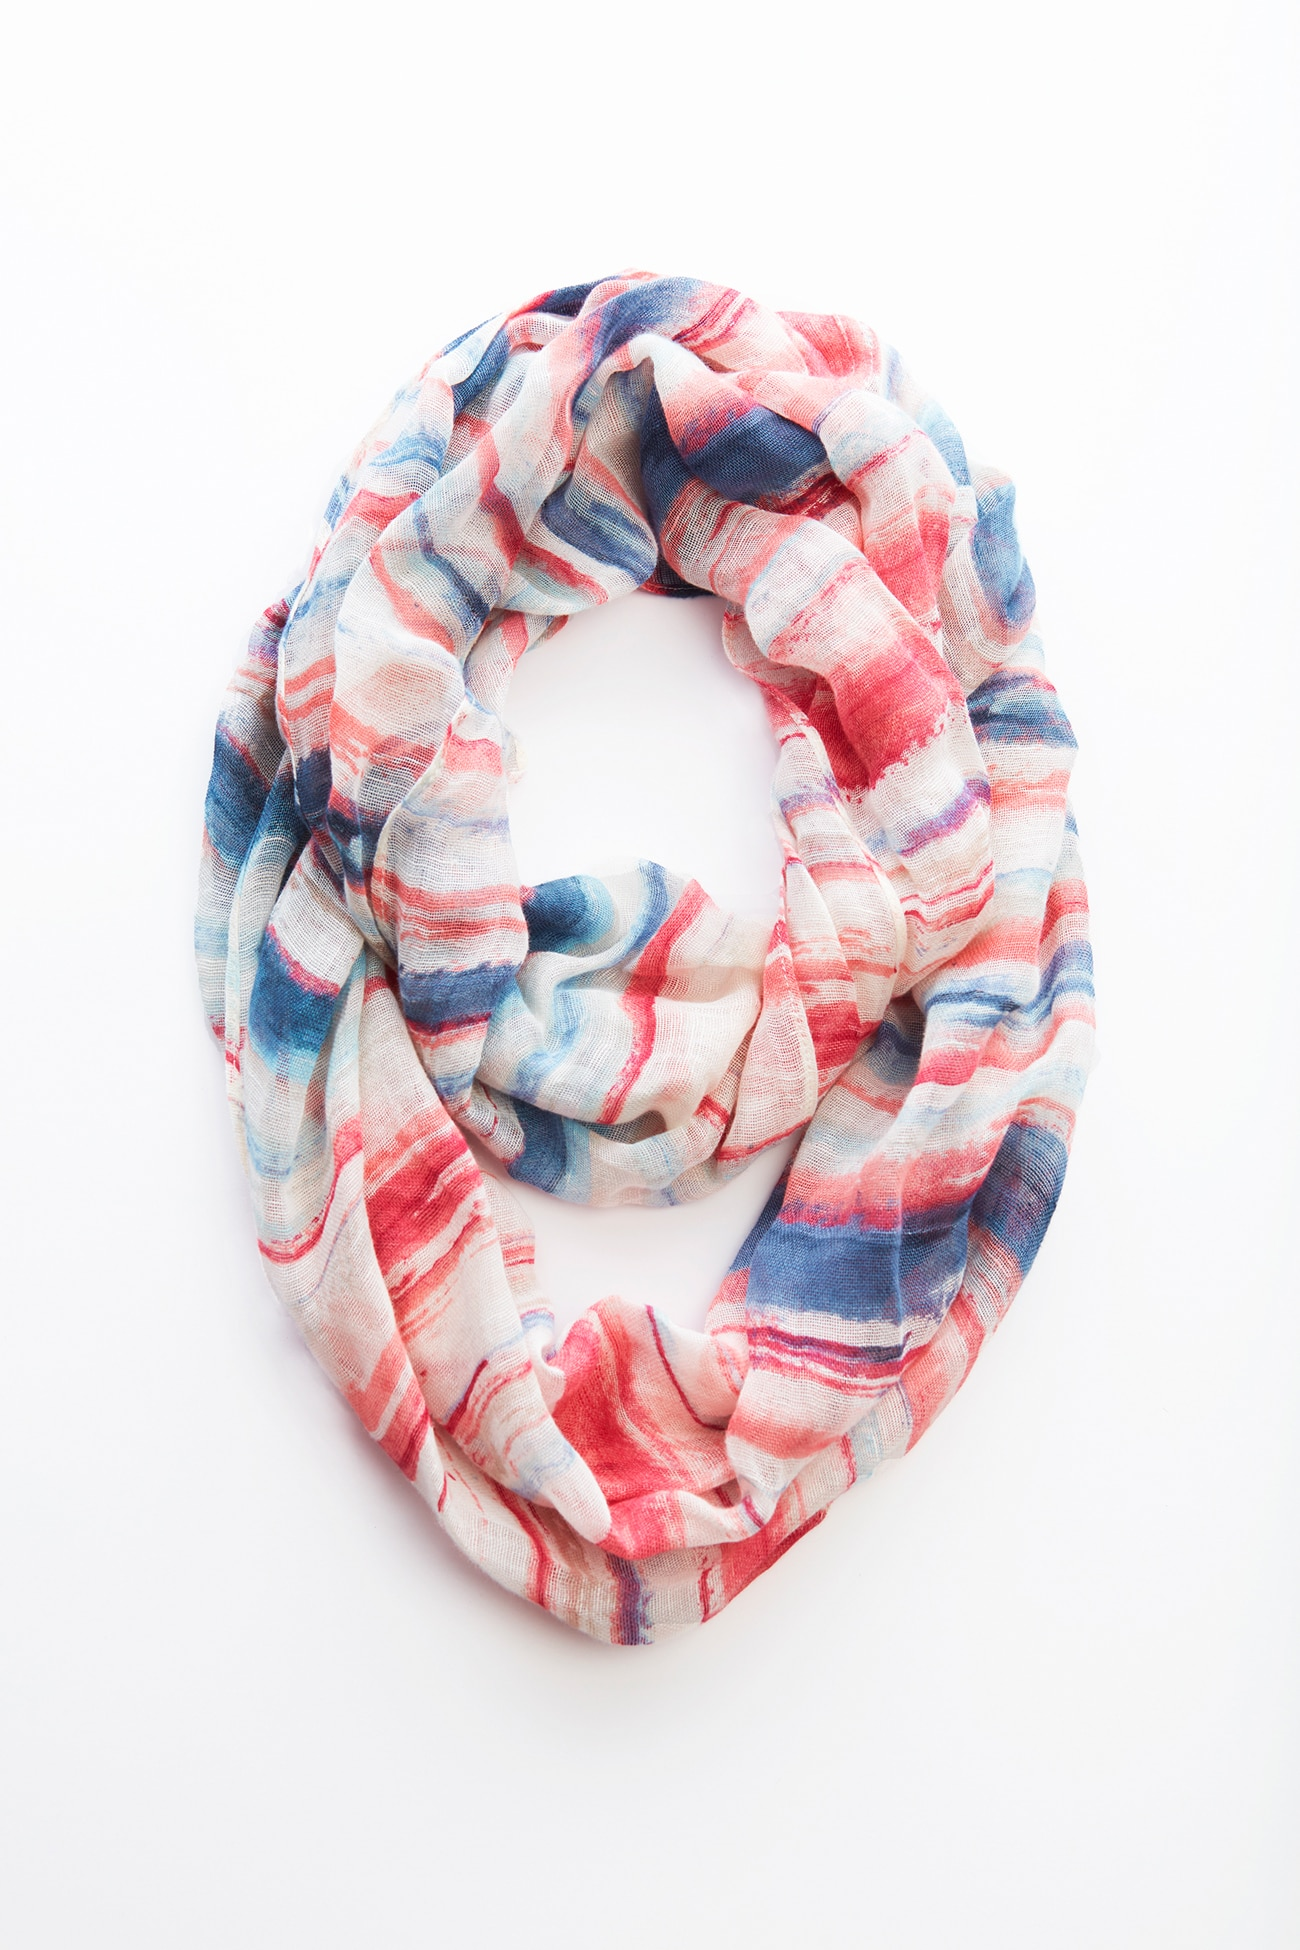 Pure Jill painterly striped infinity scarf